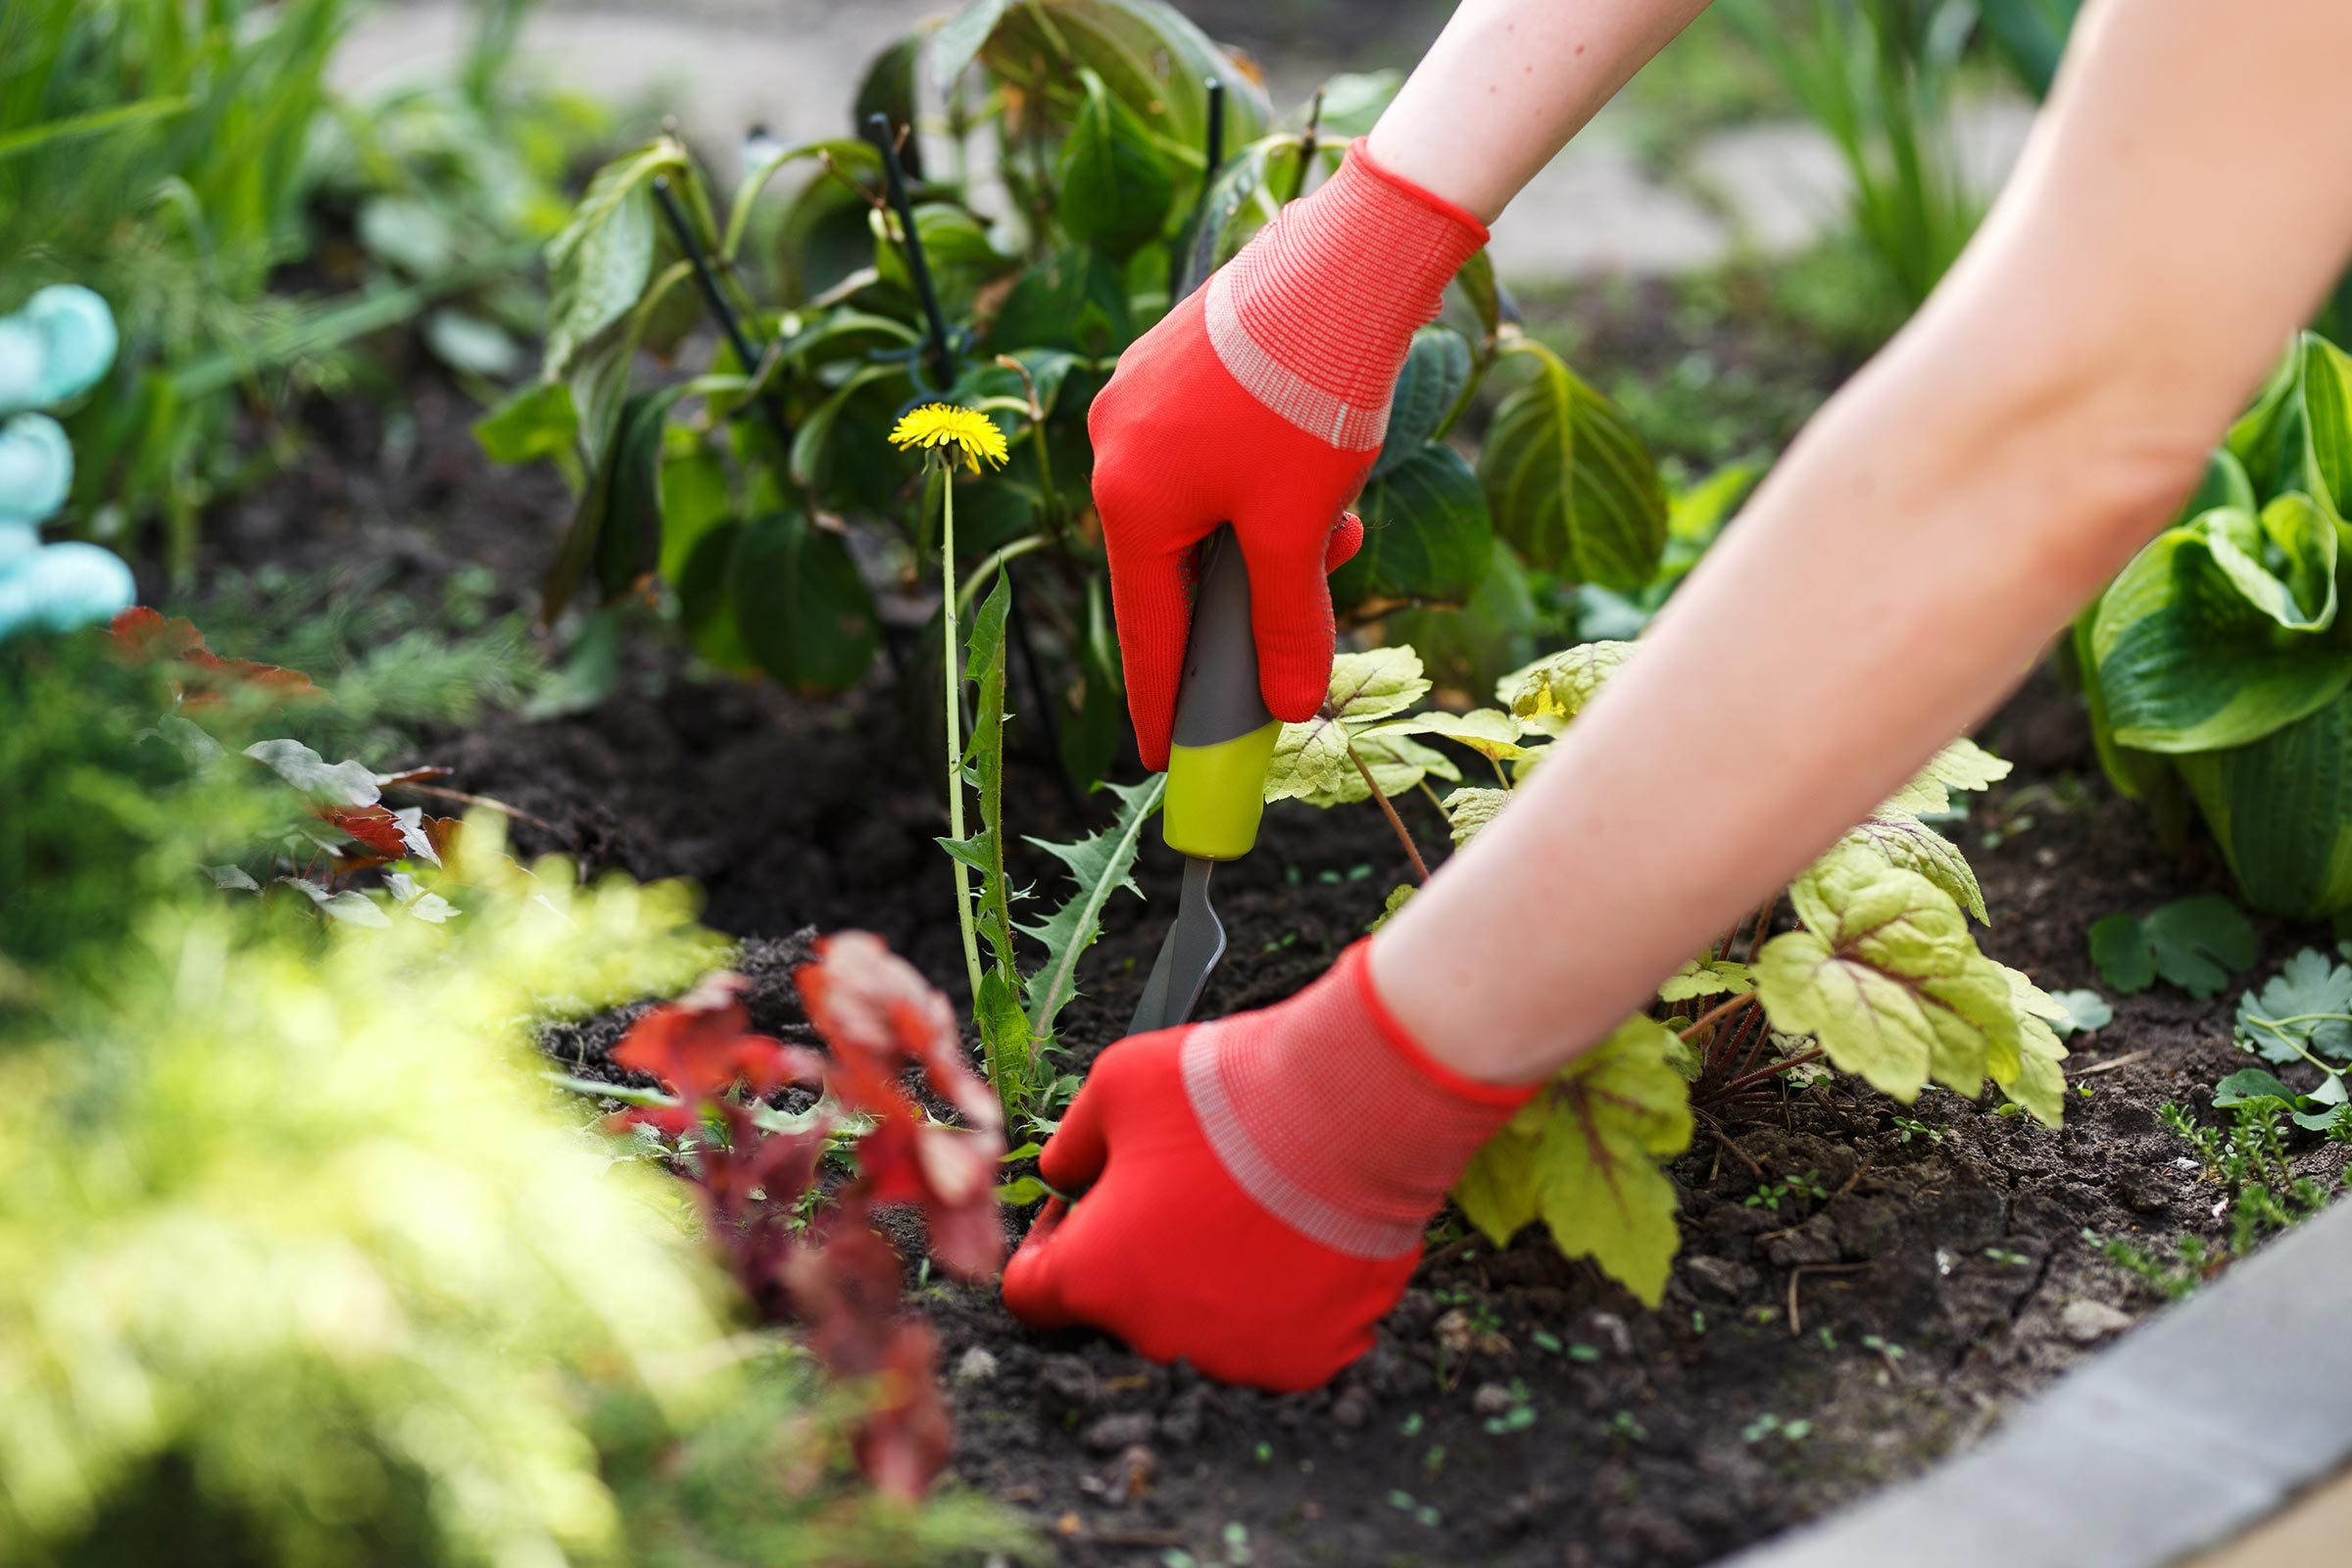 How to Kill Weeds: Ways to Kill Garden Weeds | Reader's Digest